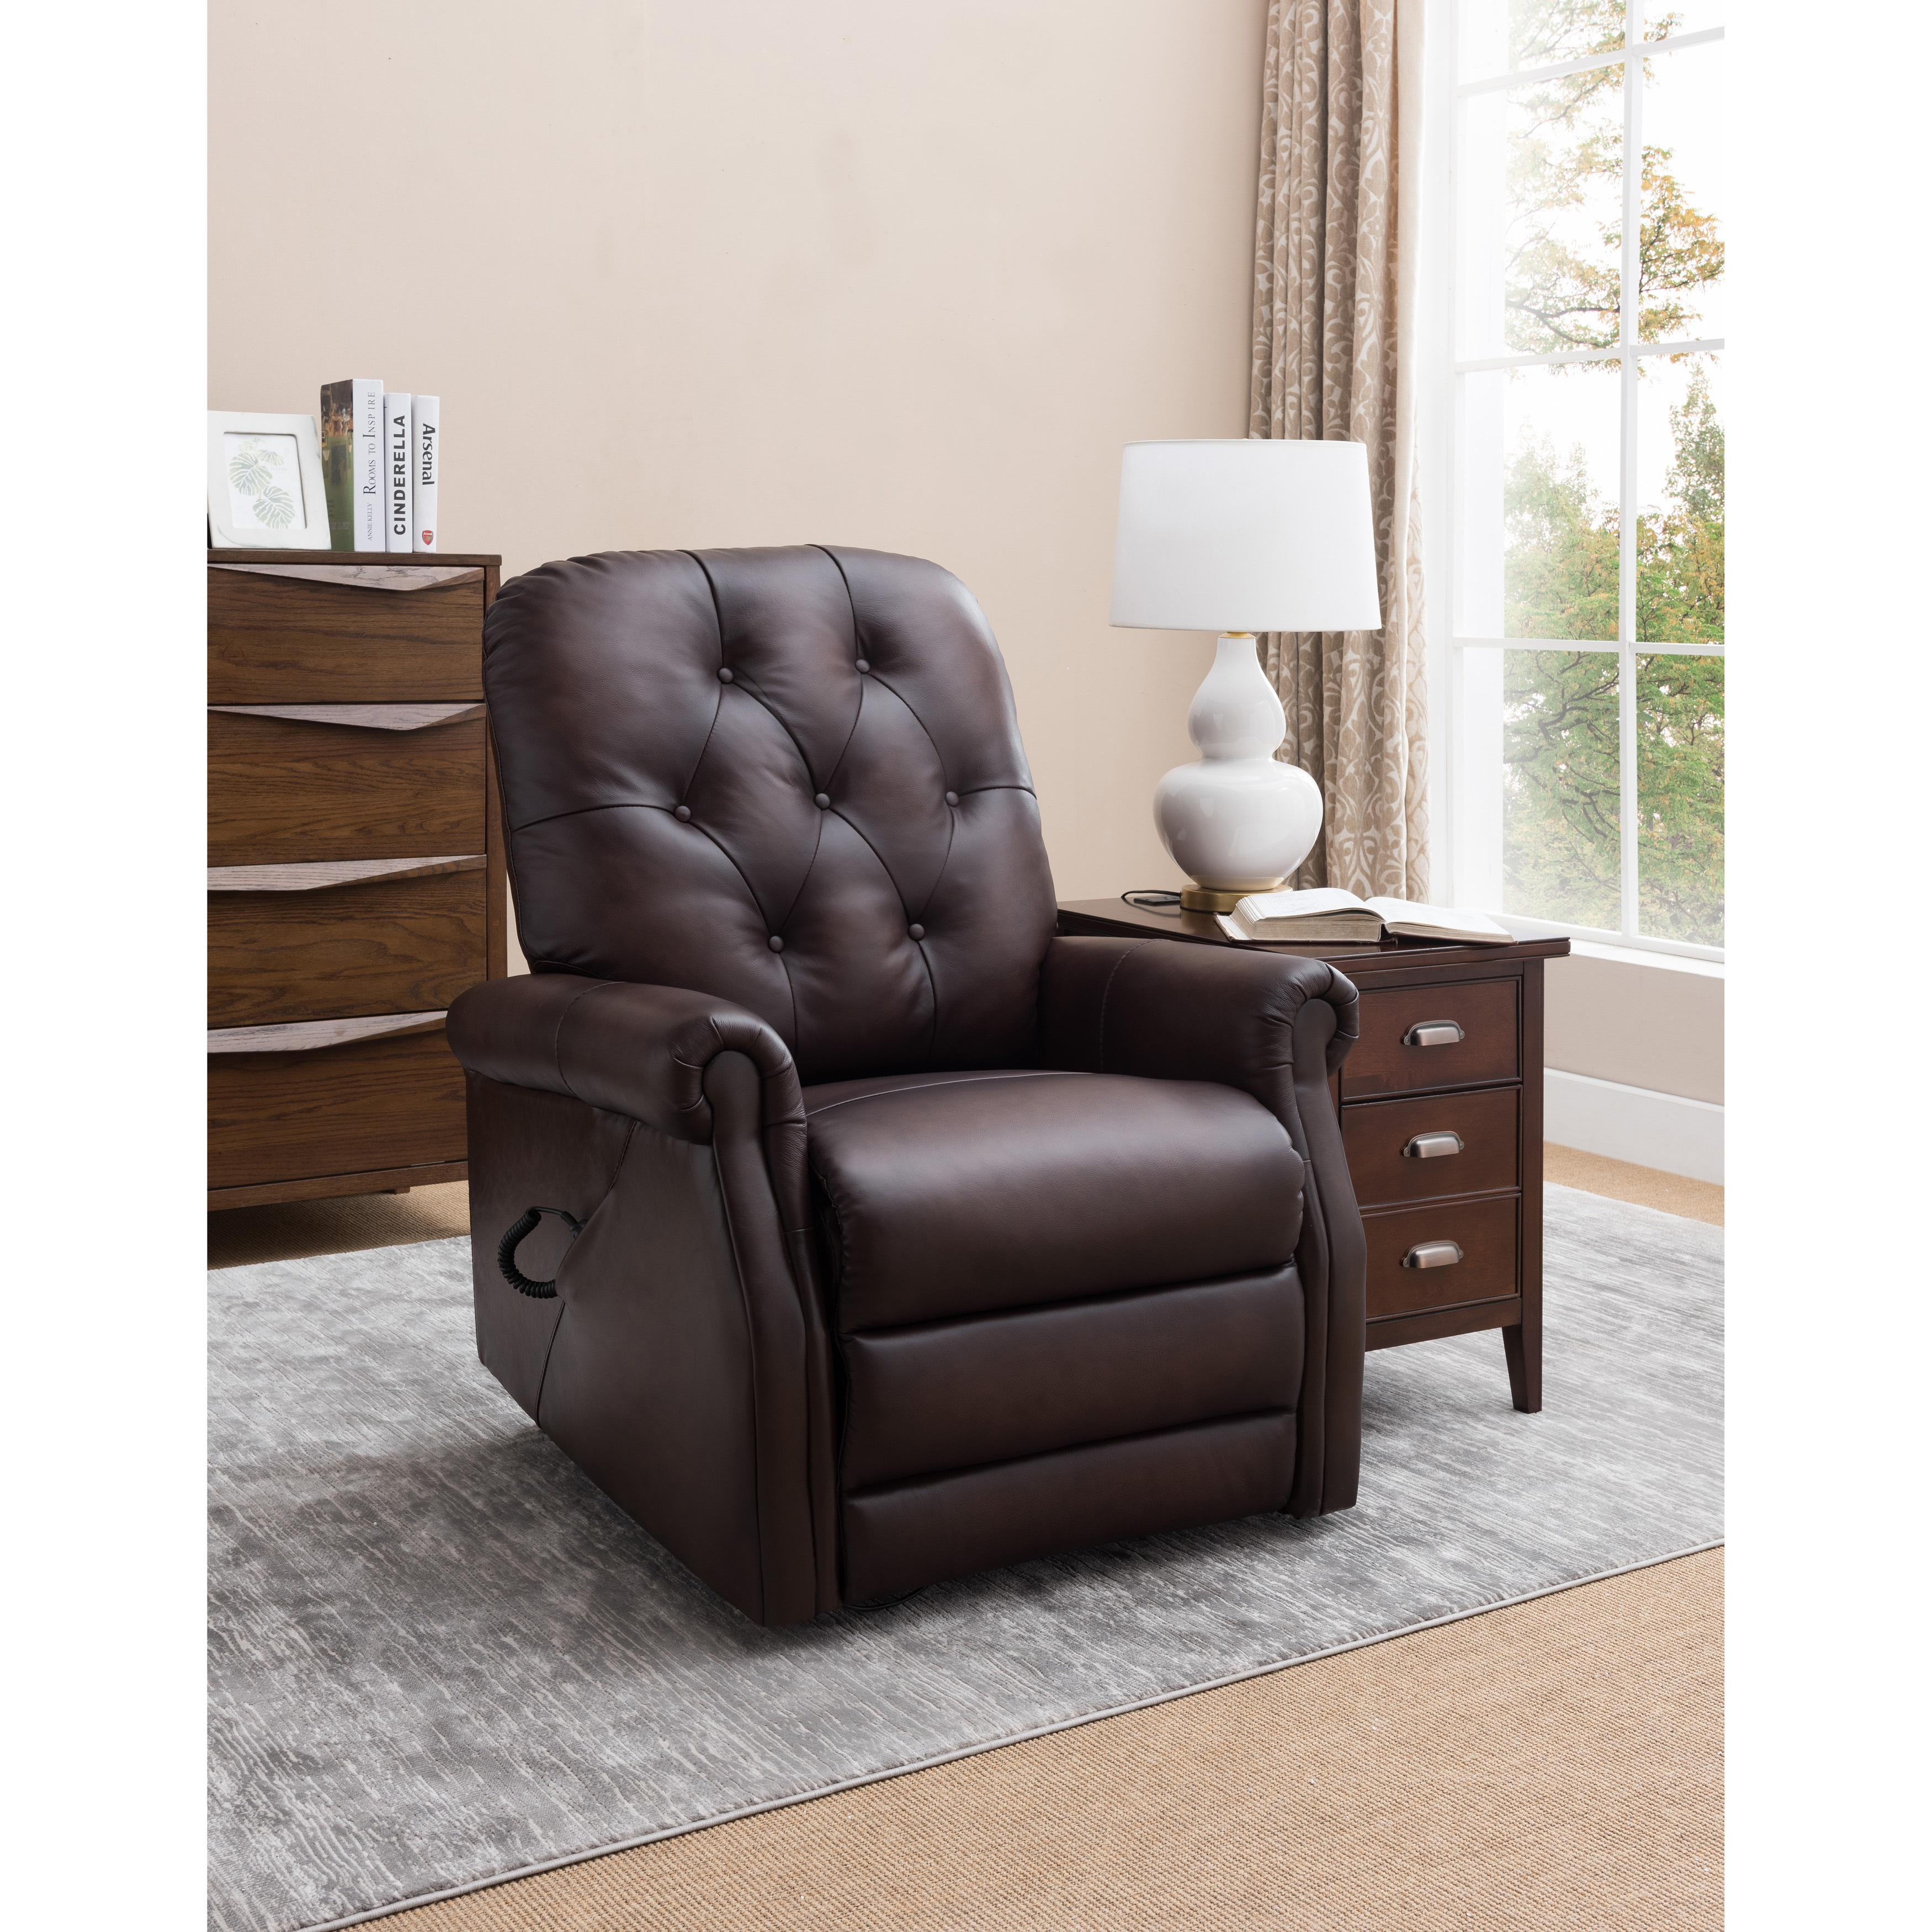 Strange Salem Brown Tufted Premium Top Grain Leather Power Lift Recliner Chair Caraccident5 Cool Chair Designs And Ideas Caraccident5Info